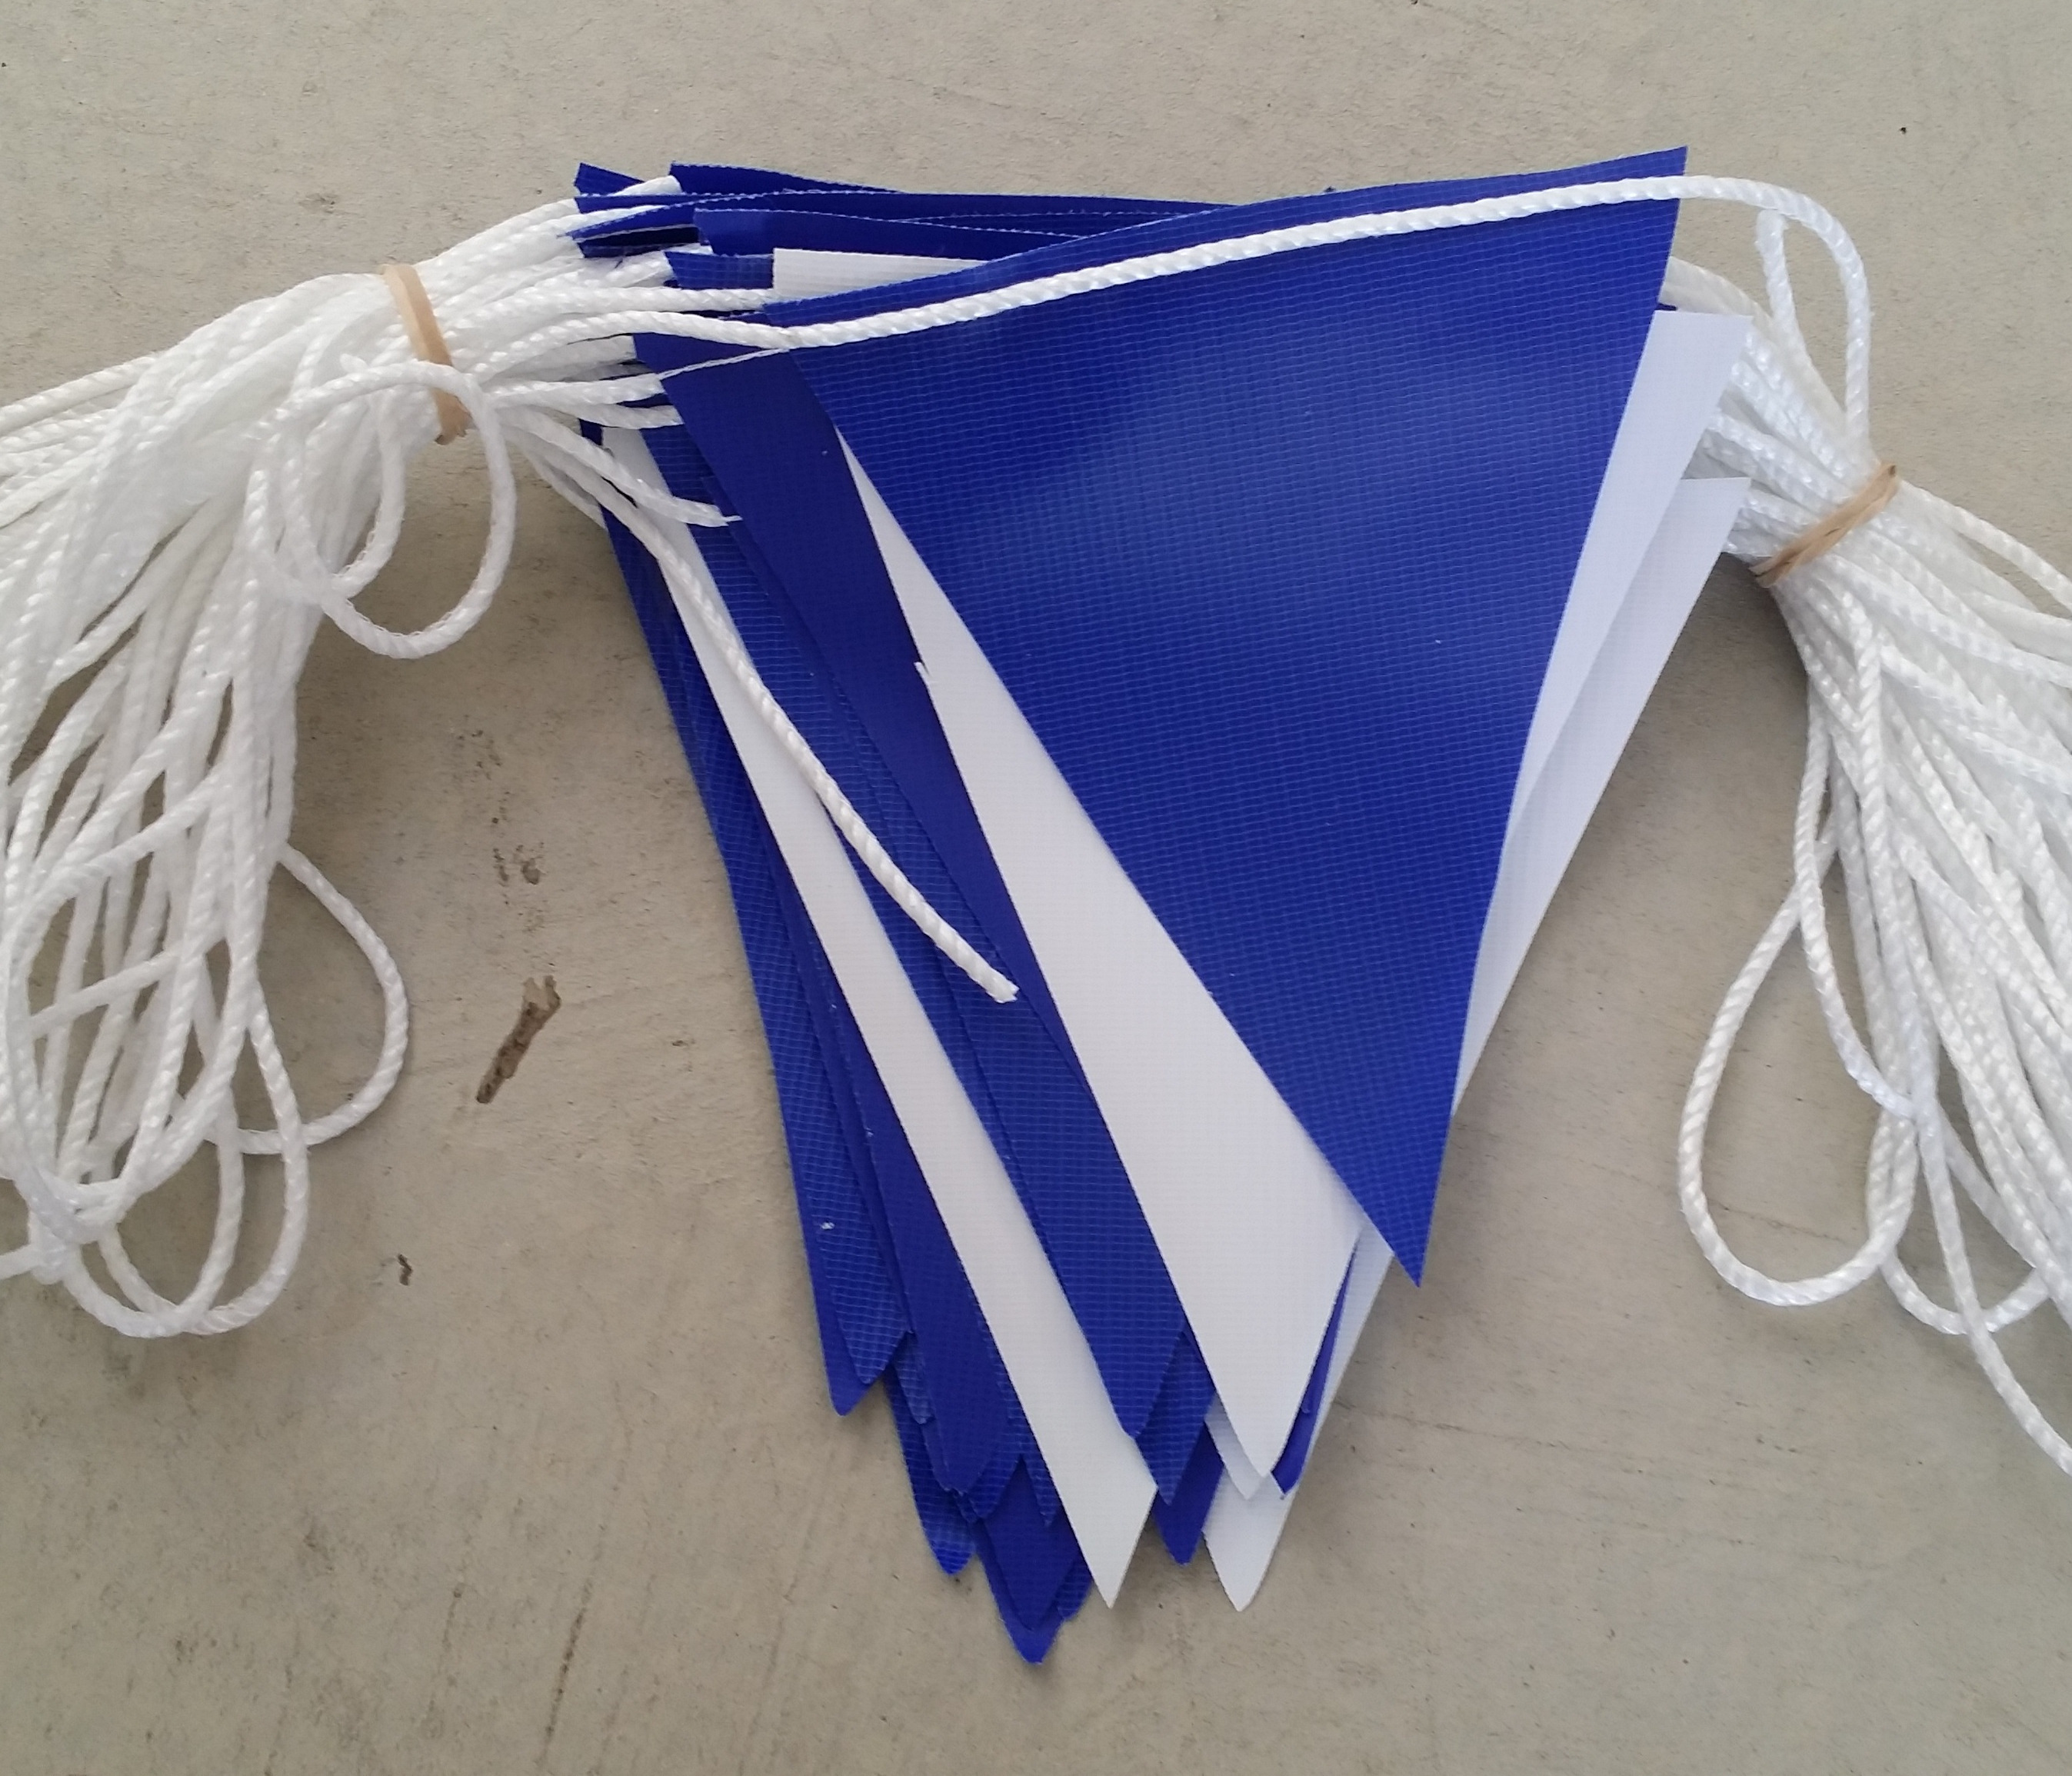 Reflex Blue and White alternating Safety Bunting